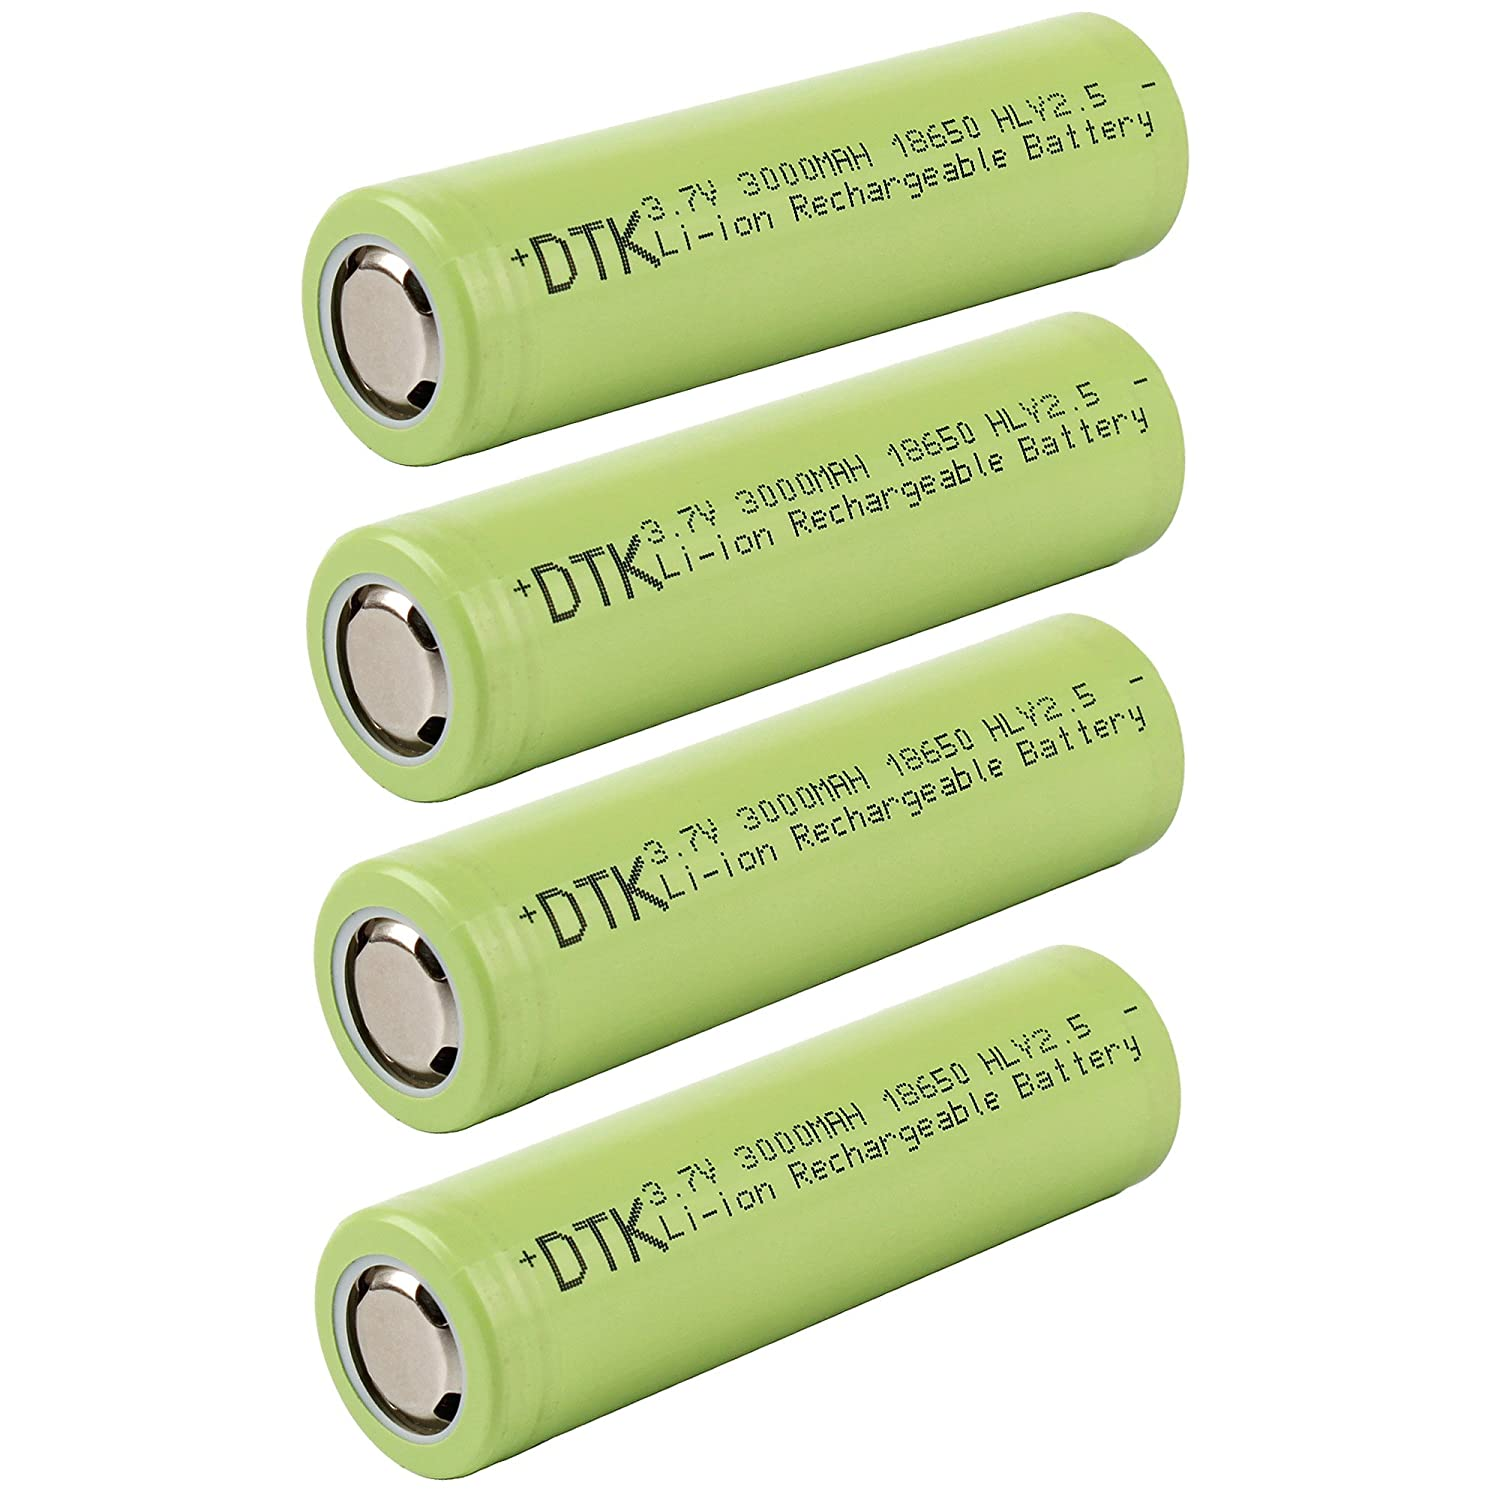 DTK Flat Top 18650 3.7V 3000mAh Li-ion Rechargeable Battery with Storage Case (2 Packs) DDX-18650-230CA